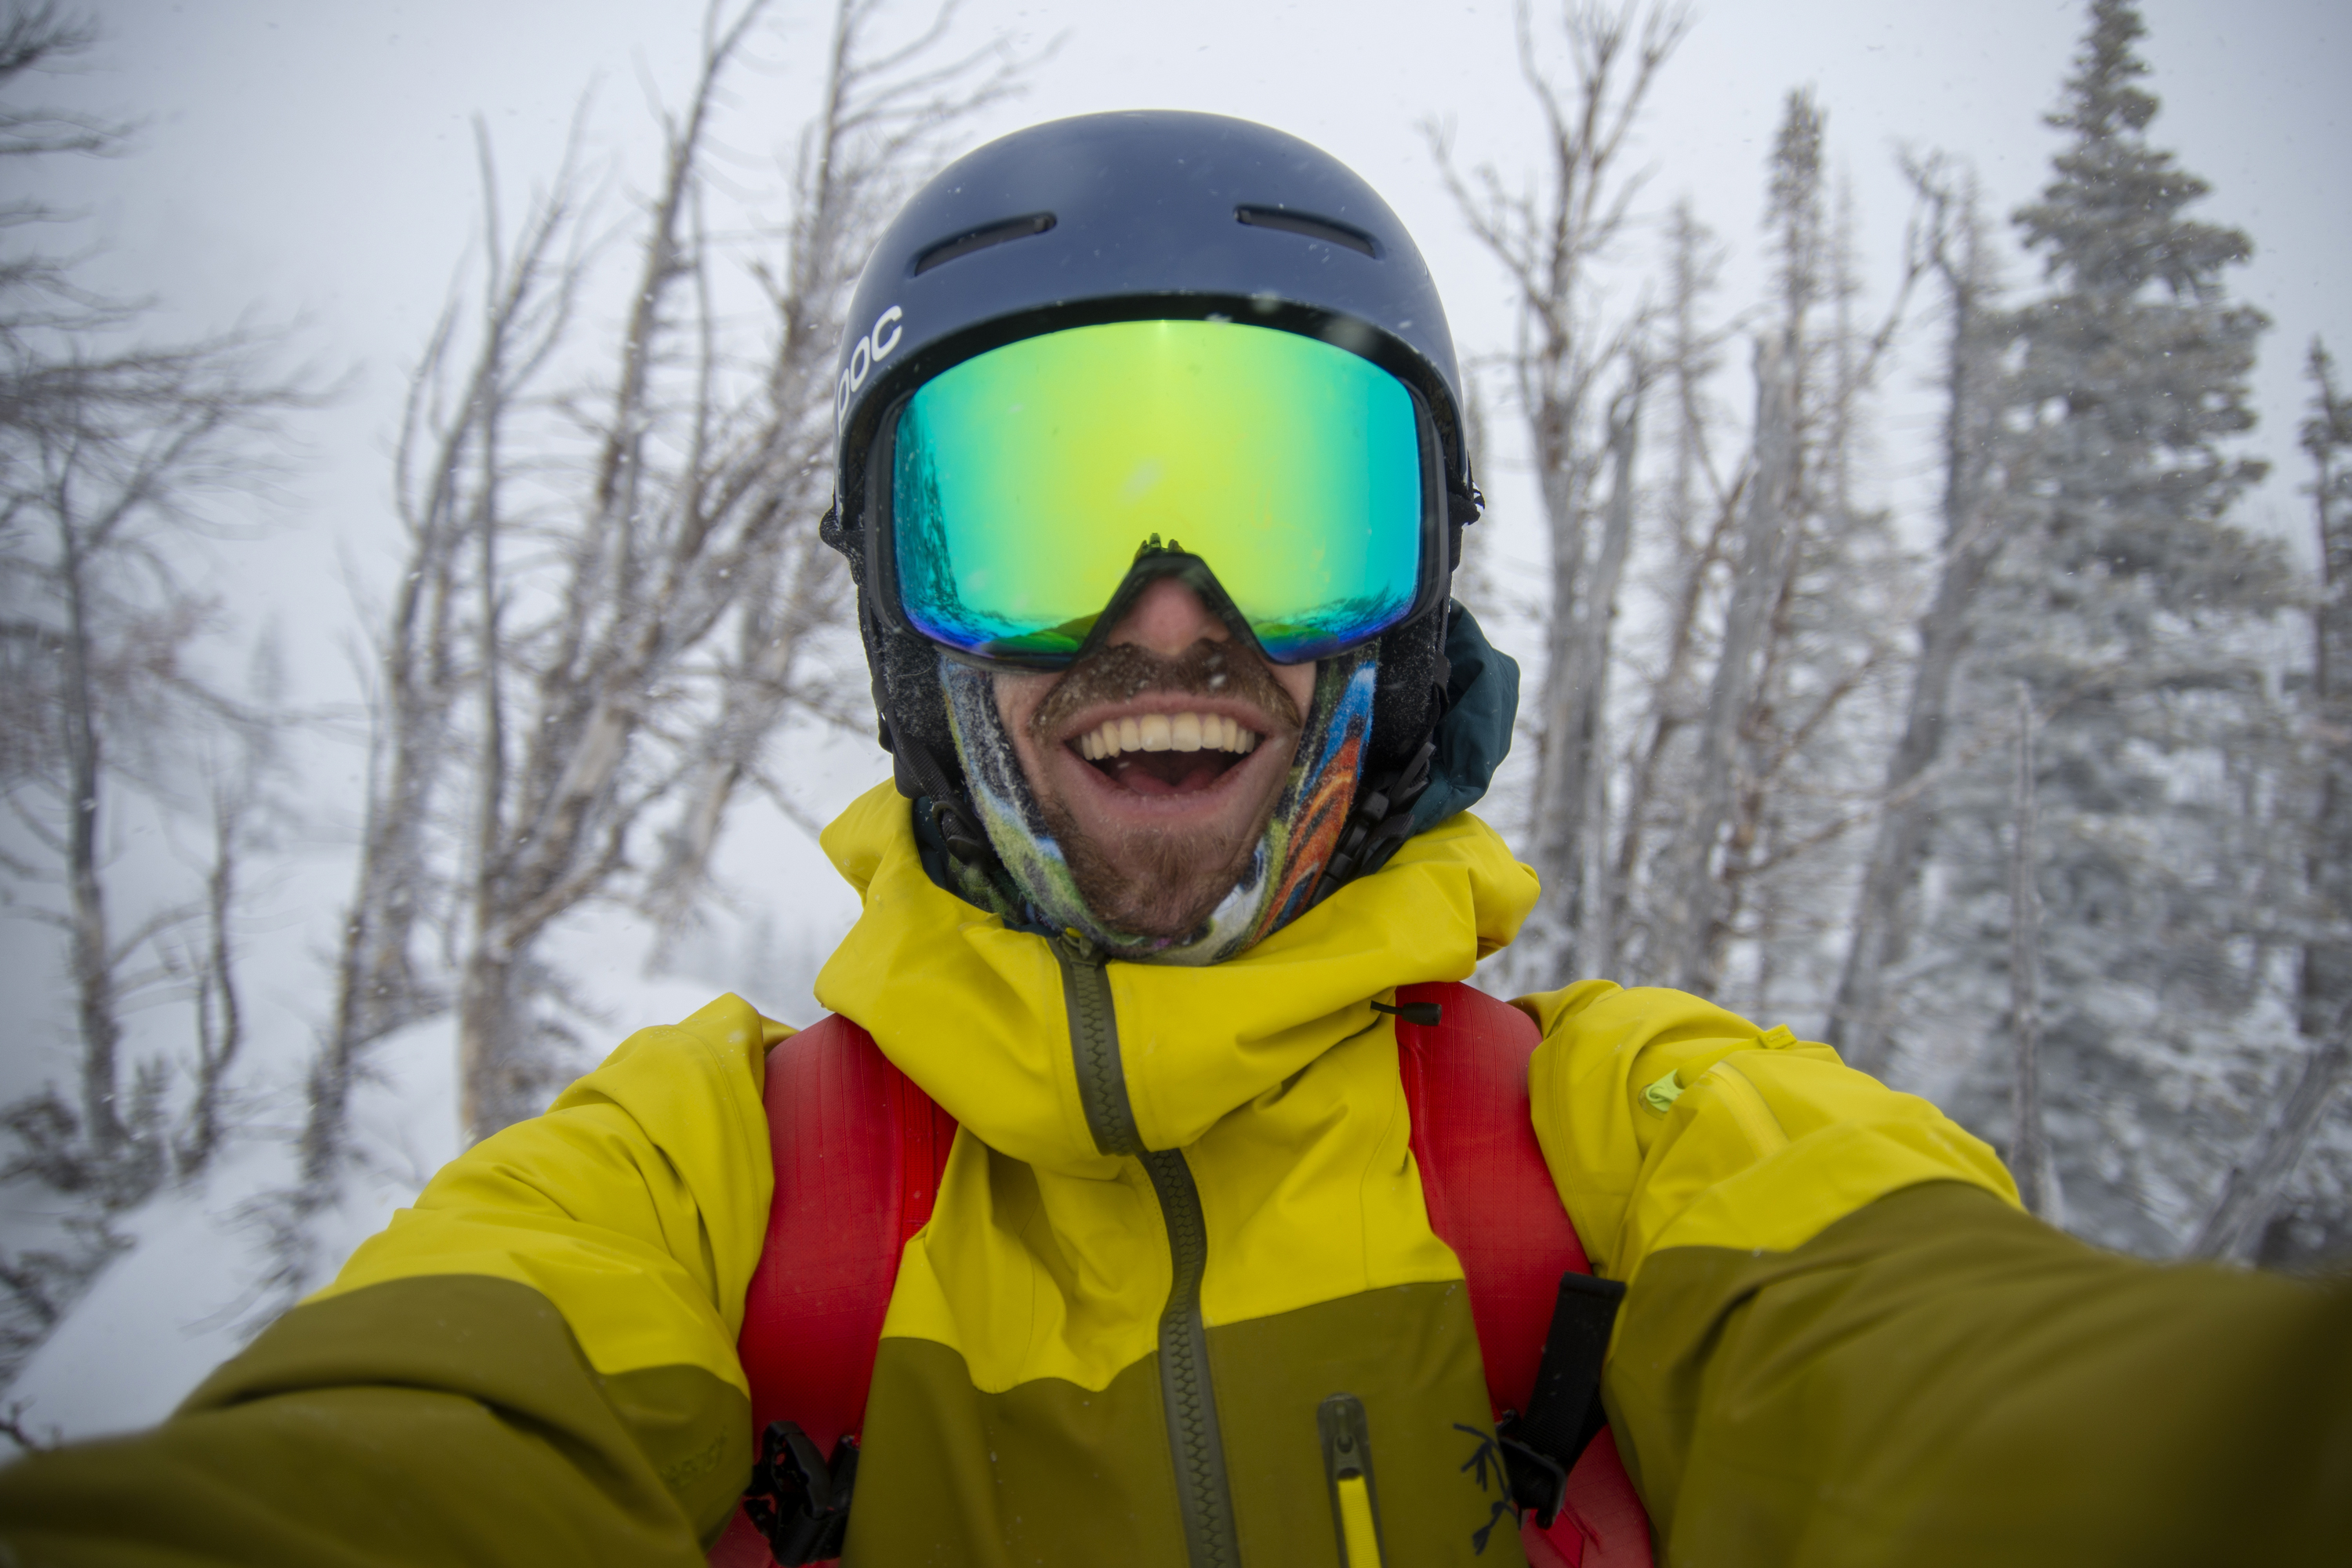 Smith 4D MAG Goggles Review: Folded Lens Offers 25% More ...